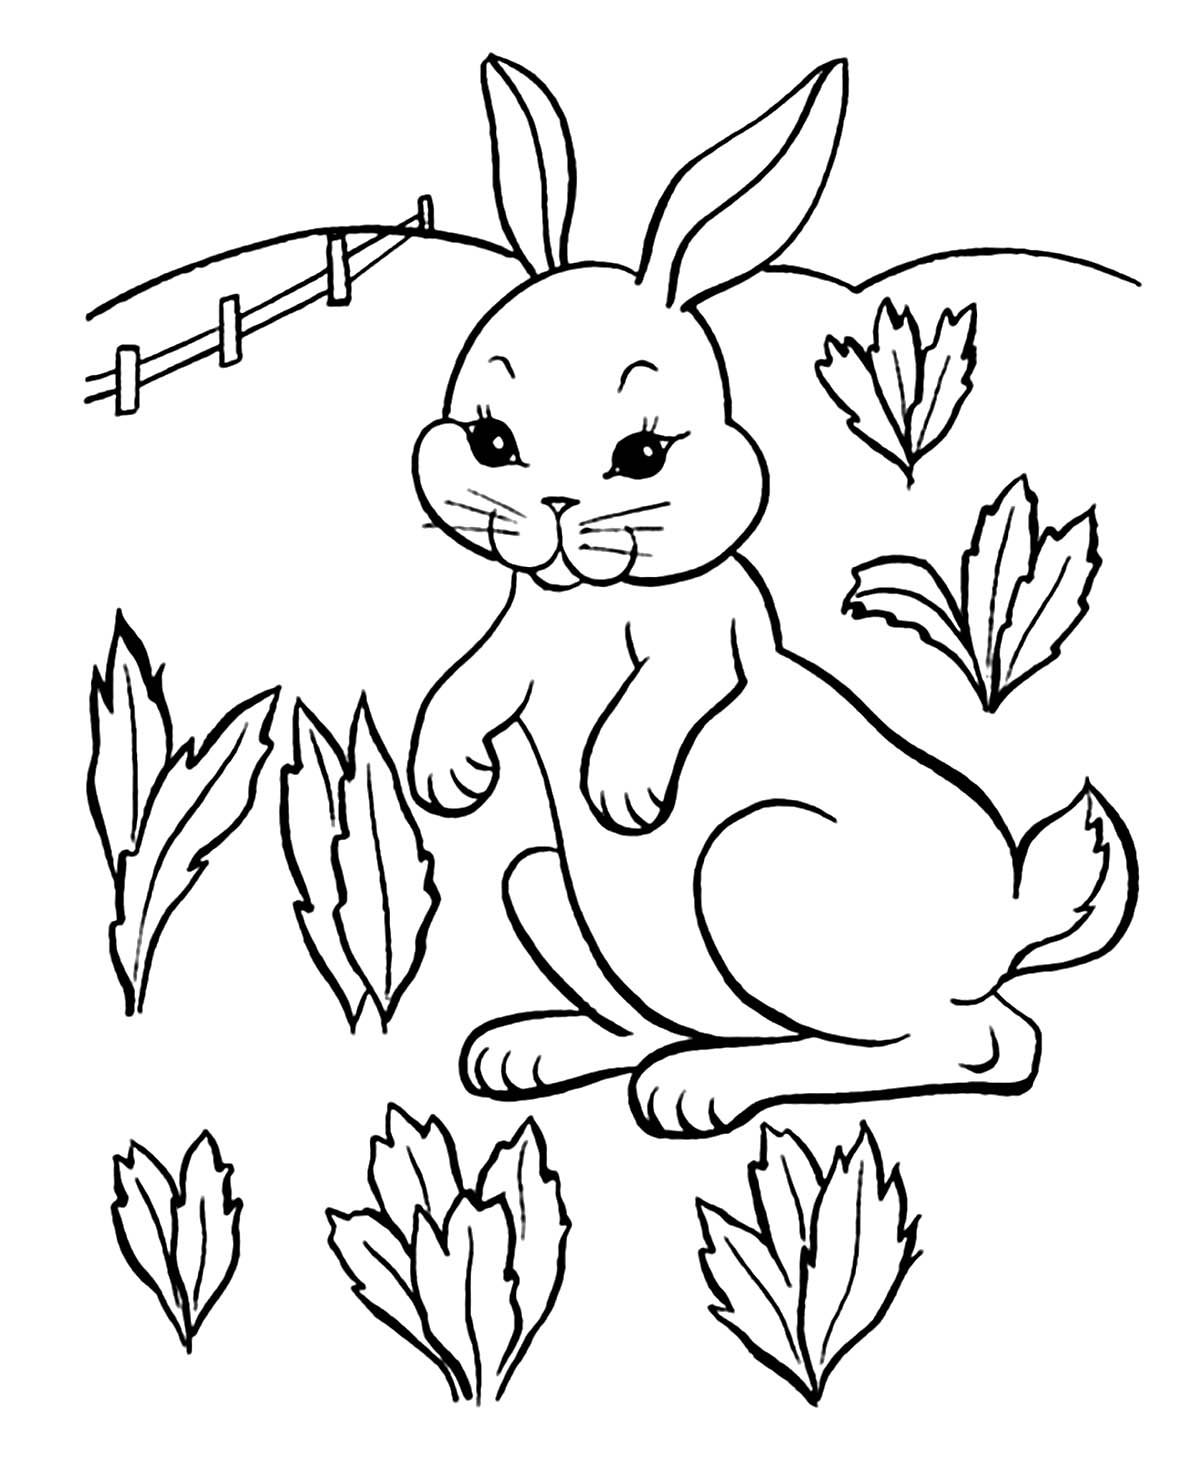 colouring pages of rabbit bunny coloring pages best coloring pages for kids rabbit of colouring pages 1 1